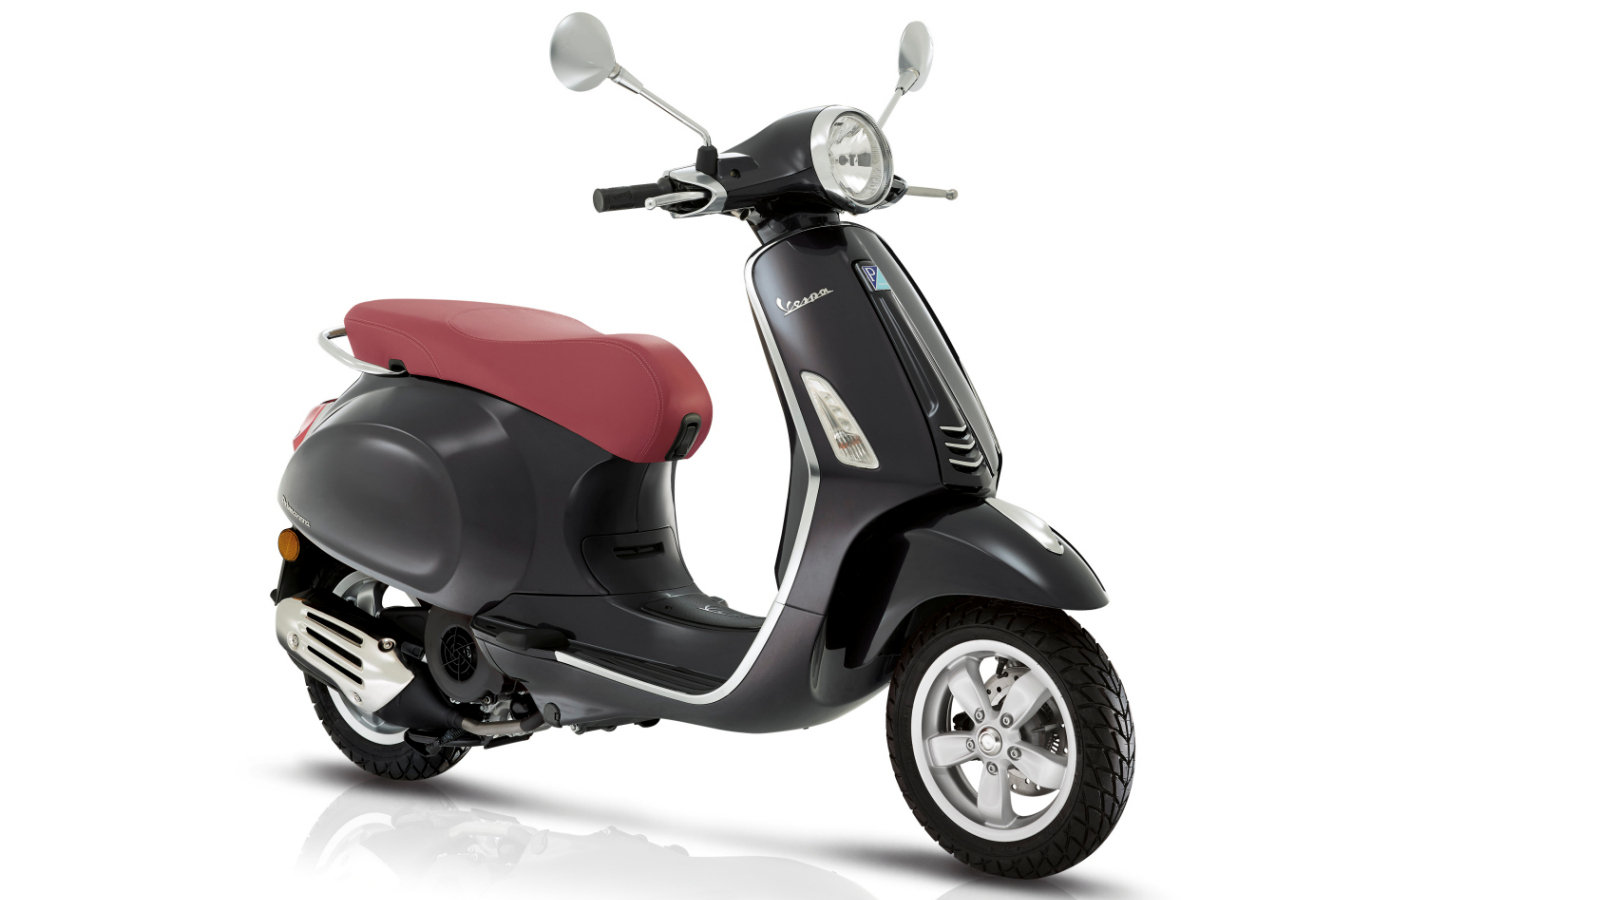 2015 2016 vespa primavera 50 150 picture 682067 motorcycle review top speed. Black Bedroom Furniture Sets. Home Design Ideas